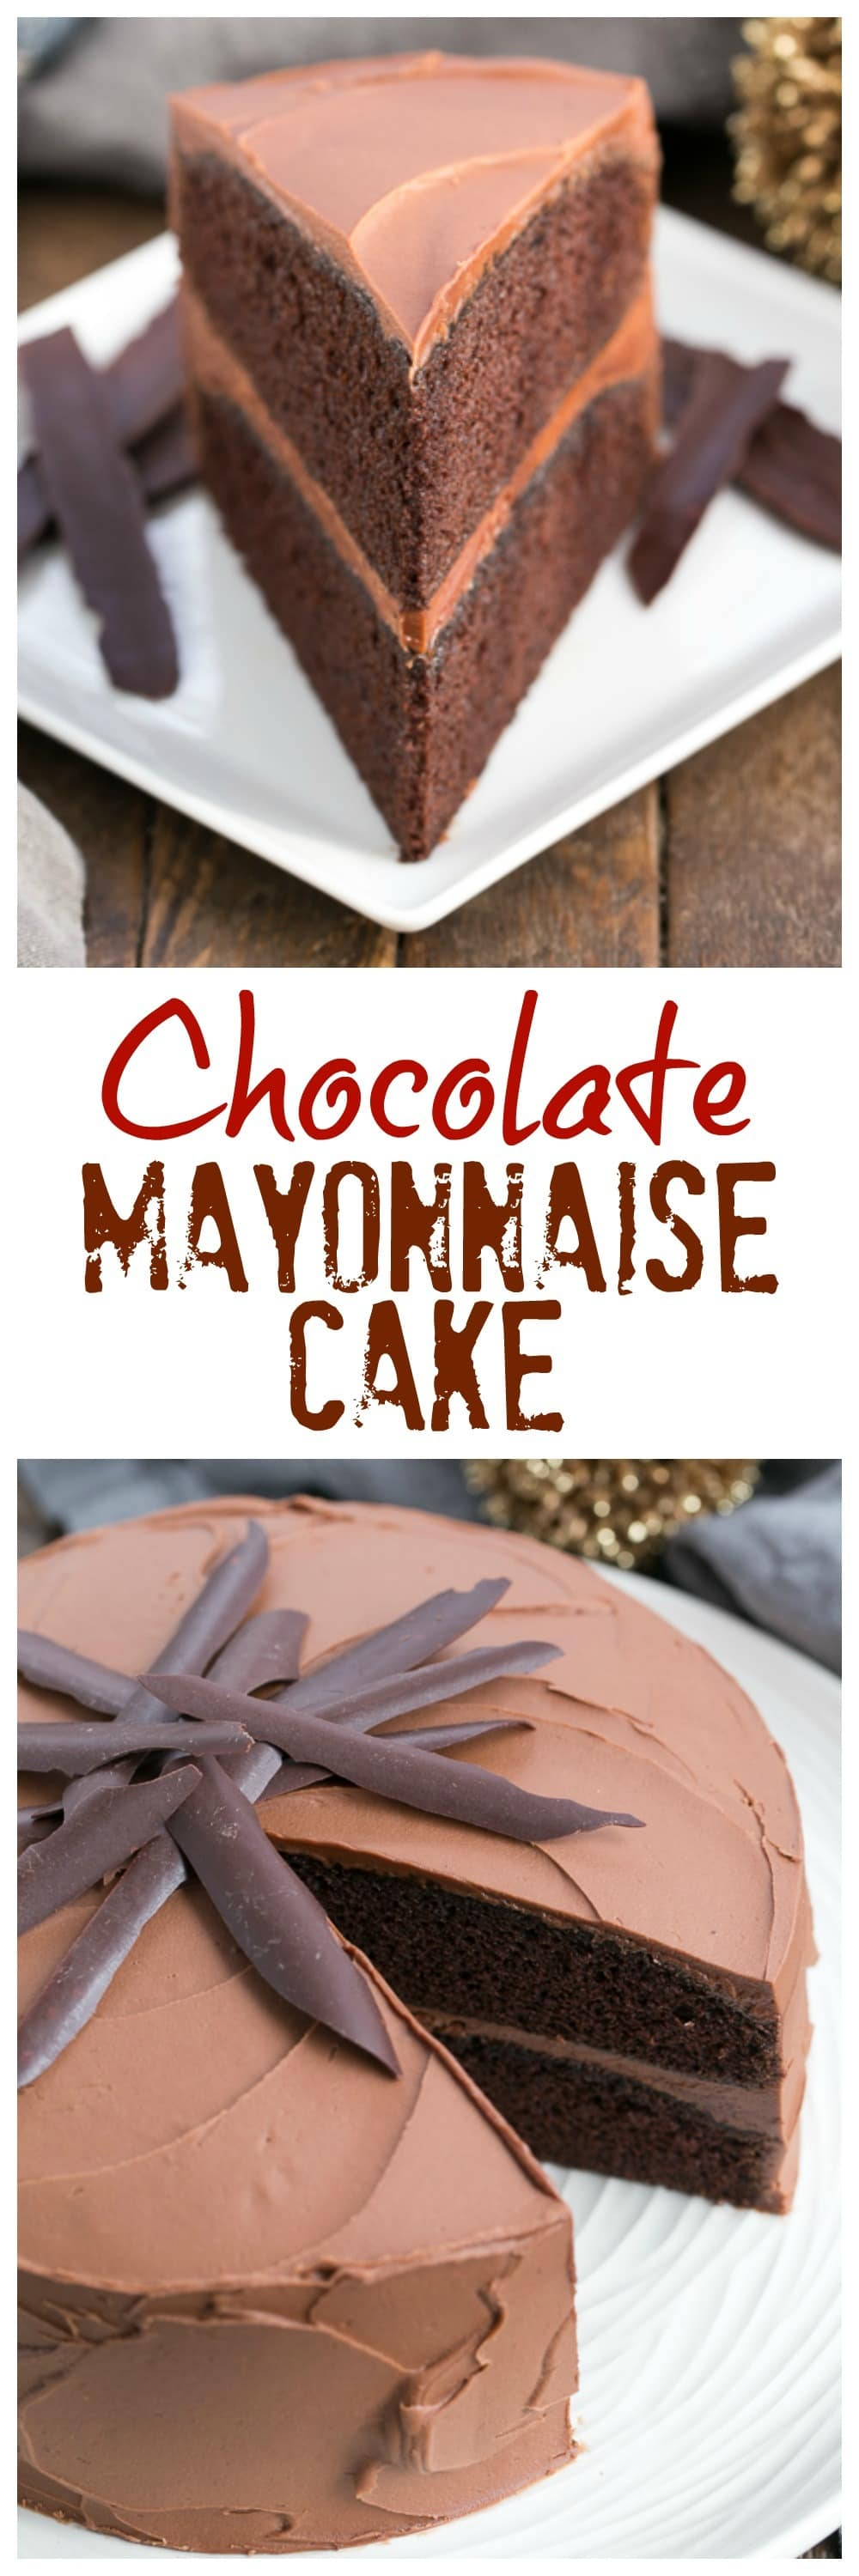 Chocolate Mayonnaise Cake - Rich, moist and irresistible! #chocolatecake #layercake #bestchocolatecake